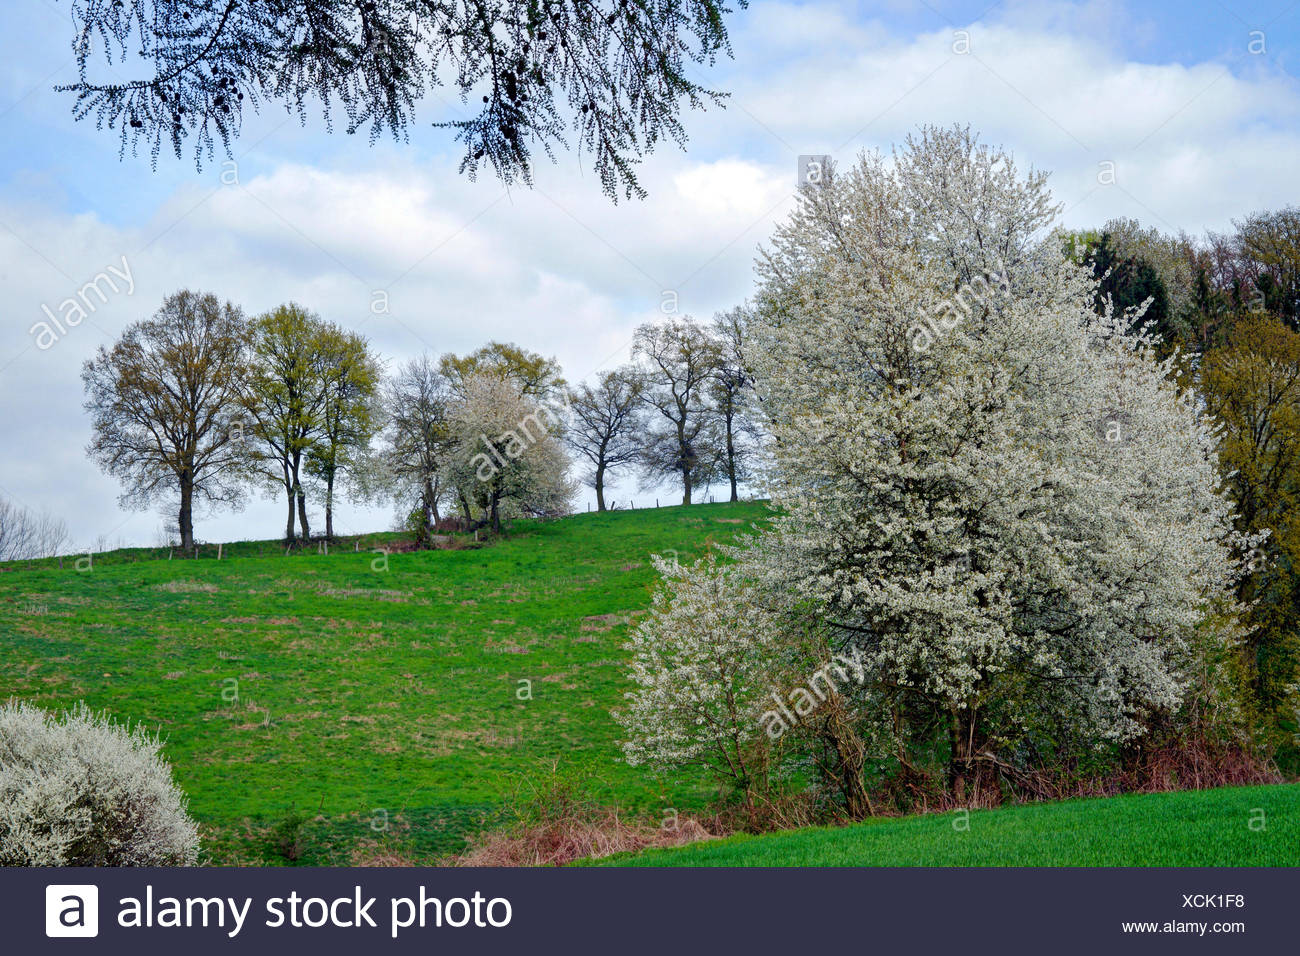 Wild cherry, Sweet cherry, gean, mazzard (Prunus avium), blooming blackthorns and wild cherry trees, Germany, North Rhine-Westphalia, Eifel - Stock Image